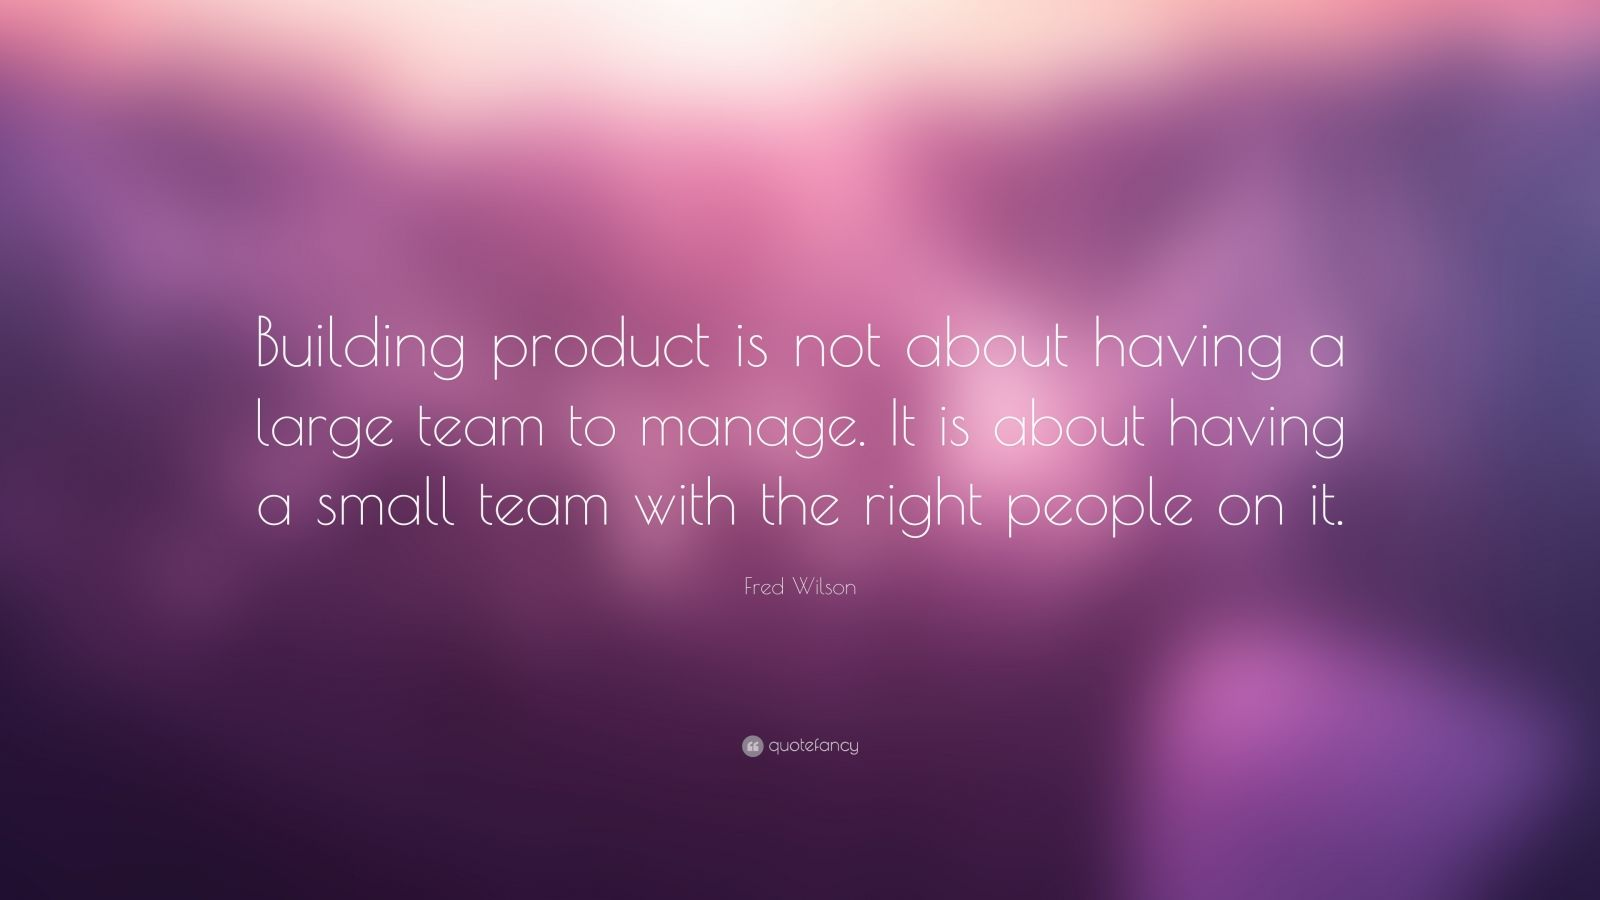 """Fred Wilson Quote: """"Building product is not about having a large team to manage. It is about having a small team with the right people on it."""""""